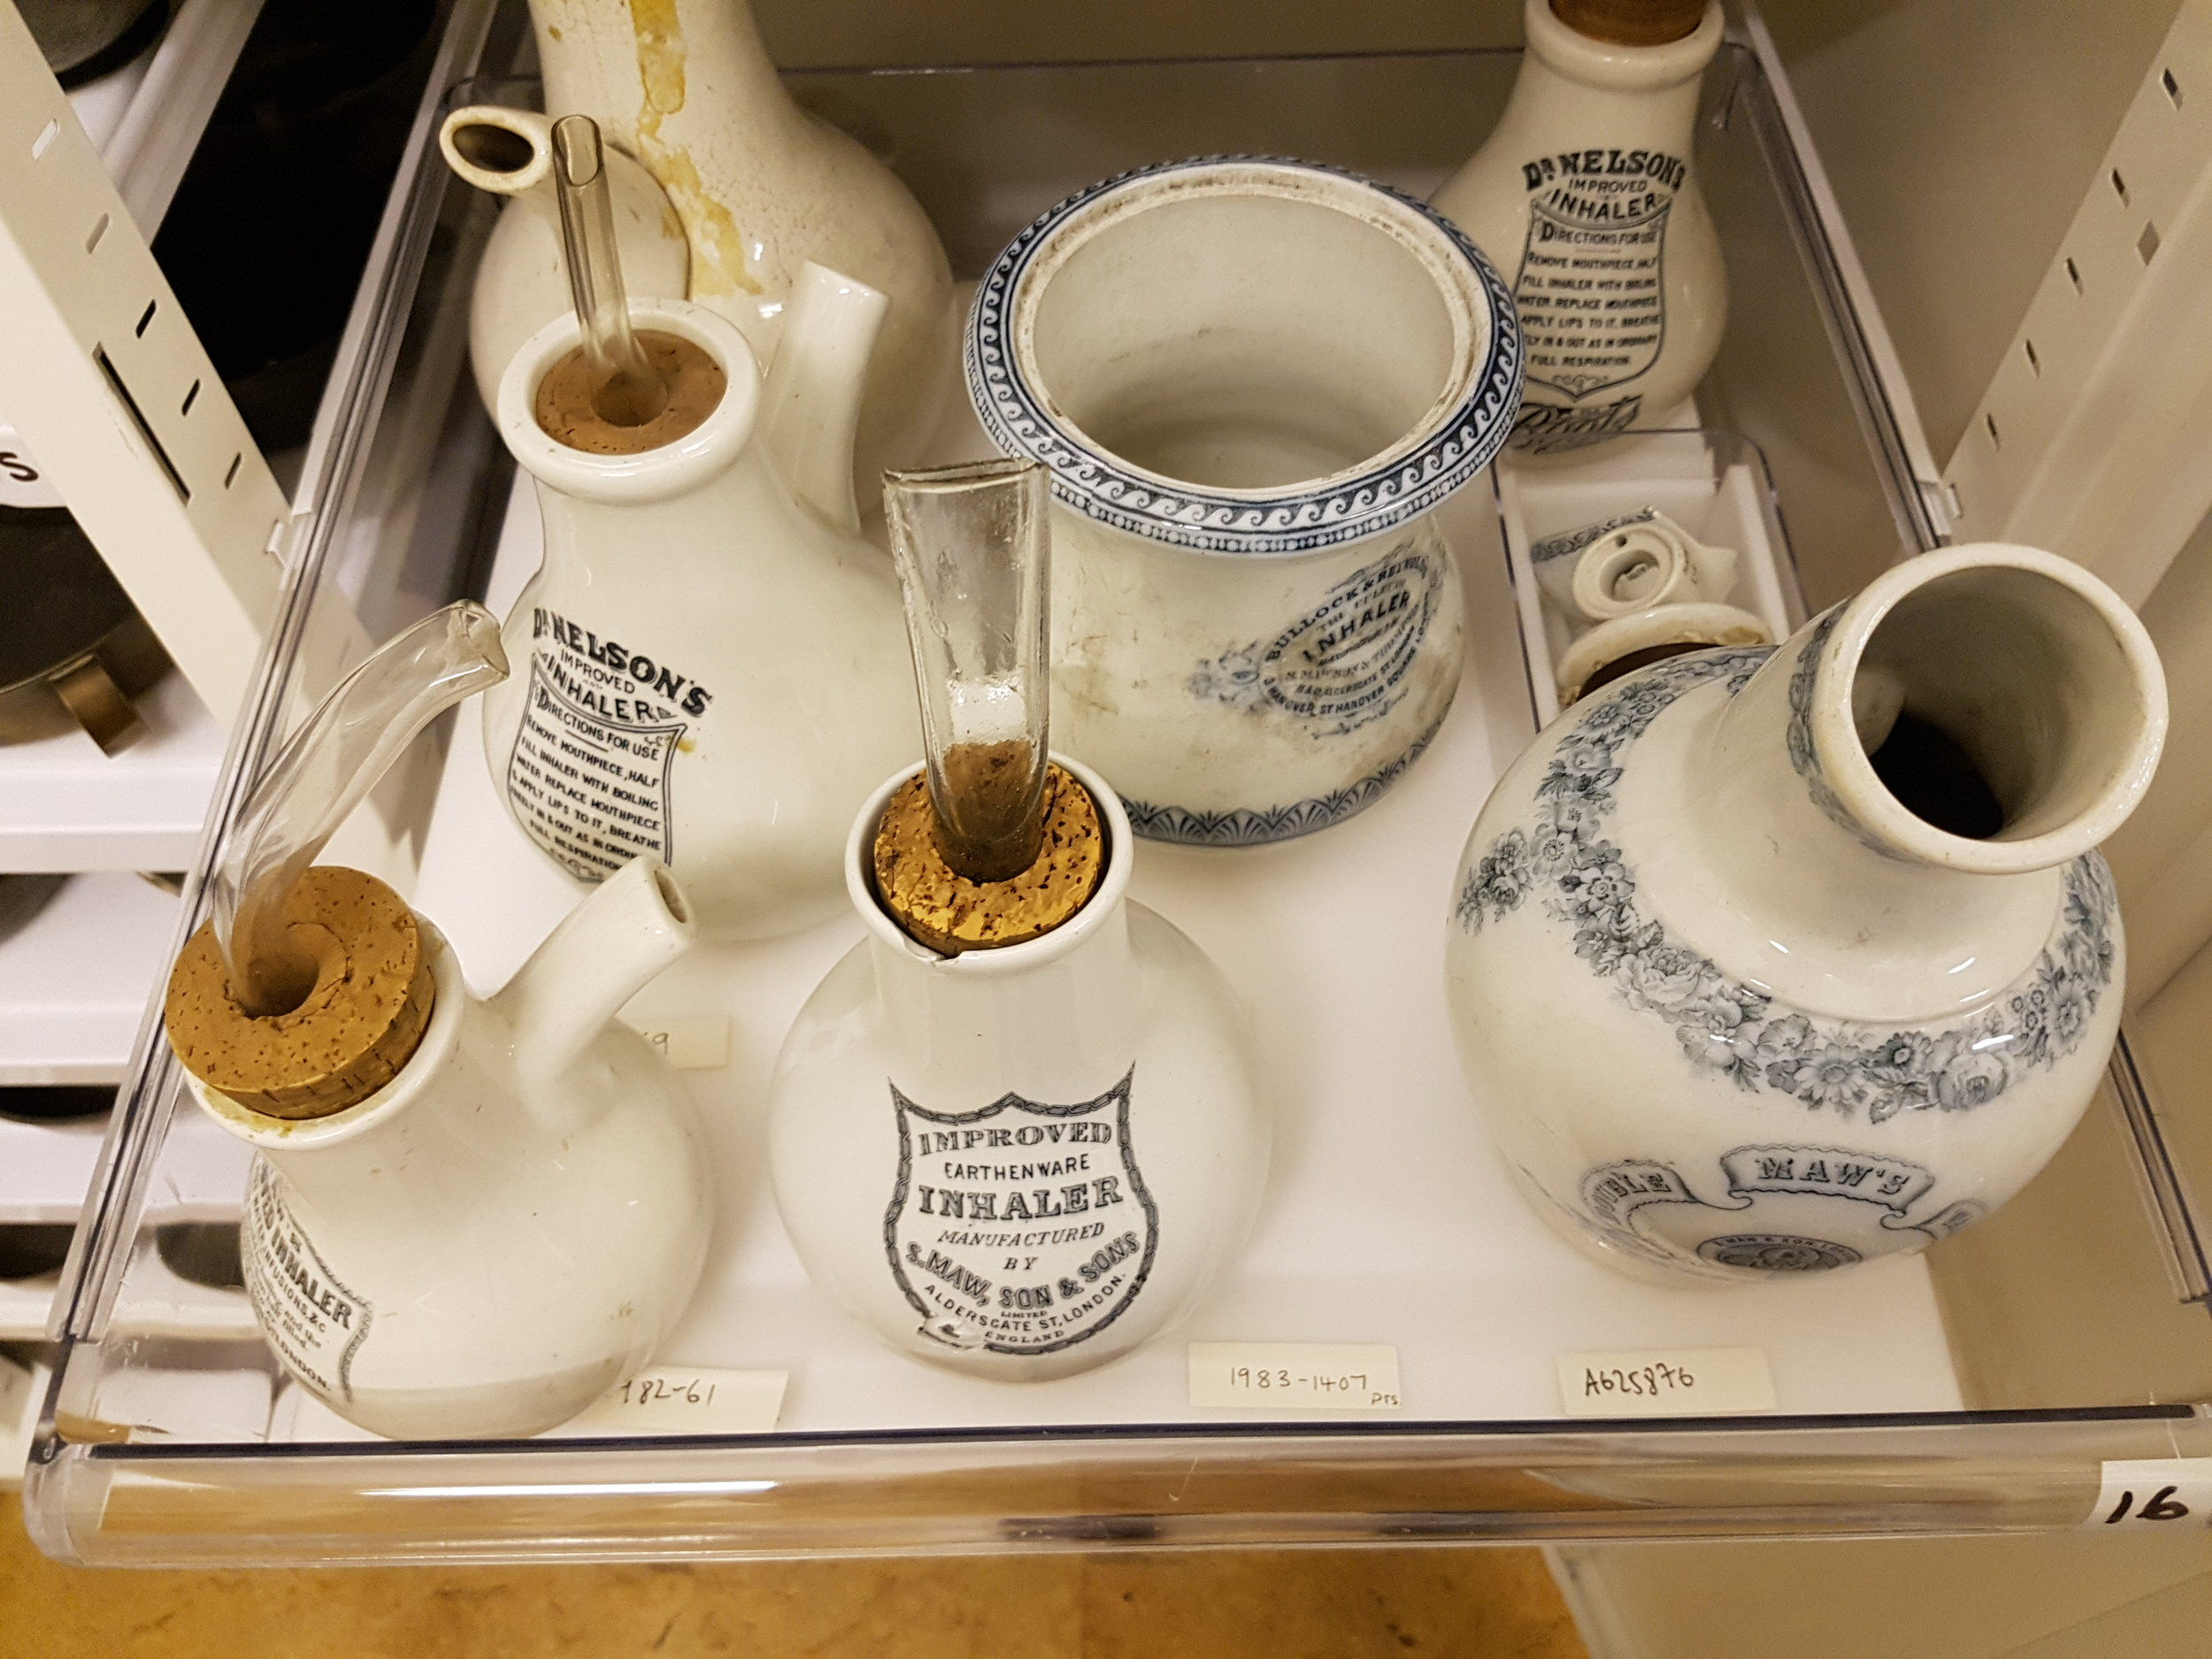 Ceramic inhalers similar to those used by Marcel Proust to treat severe asthma. (© Science Museum, photograph by Harriet Barratt)